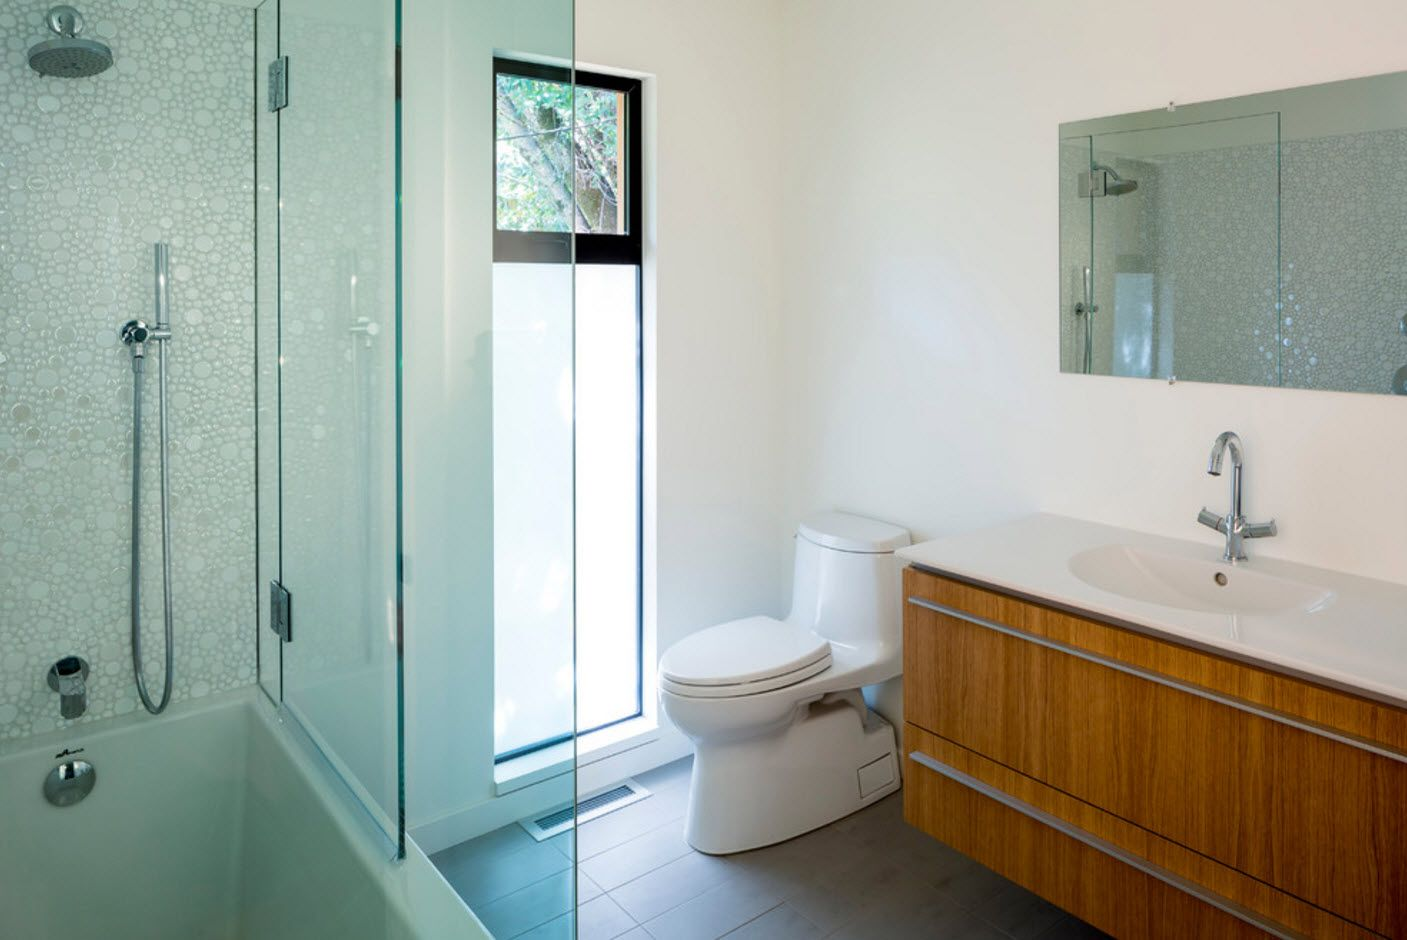 Yellow wooden surface brings not of rusticality to the interior of the bathroom 2017